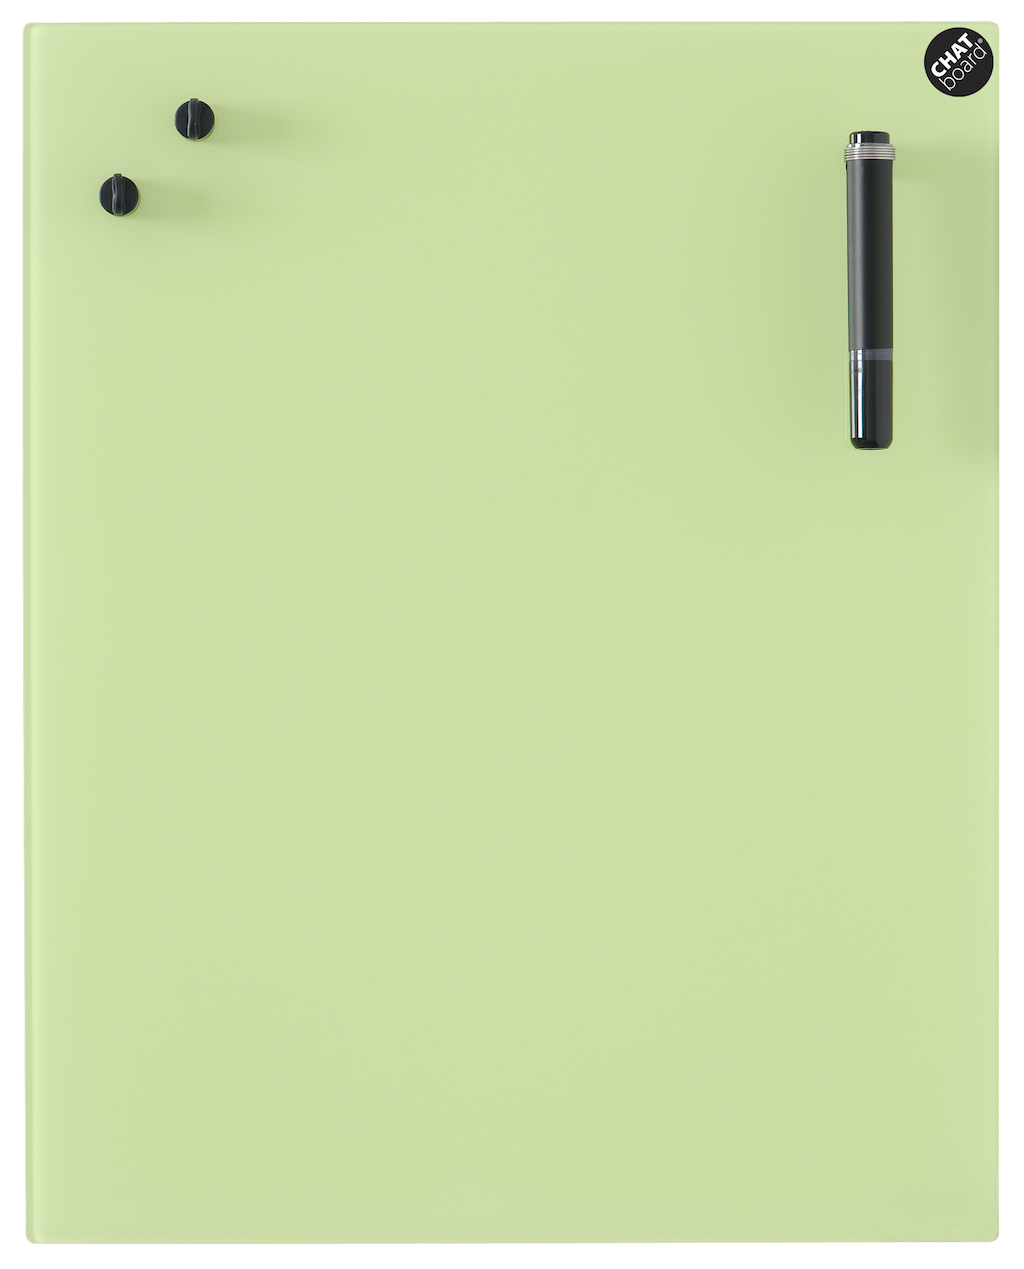 CHAT BOARD® – Lime Green